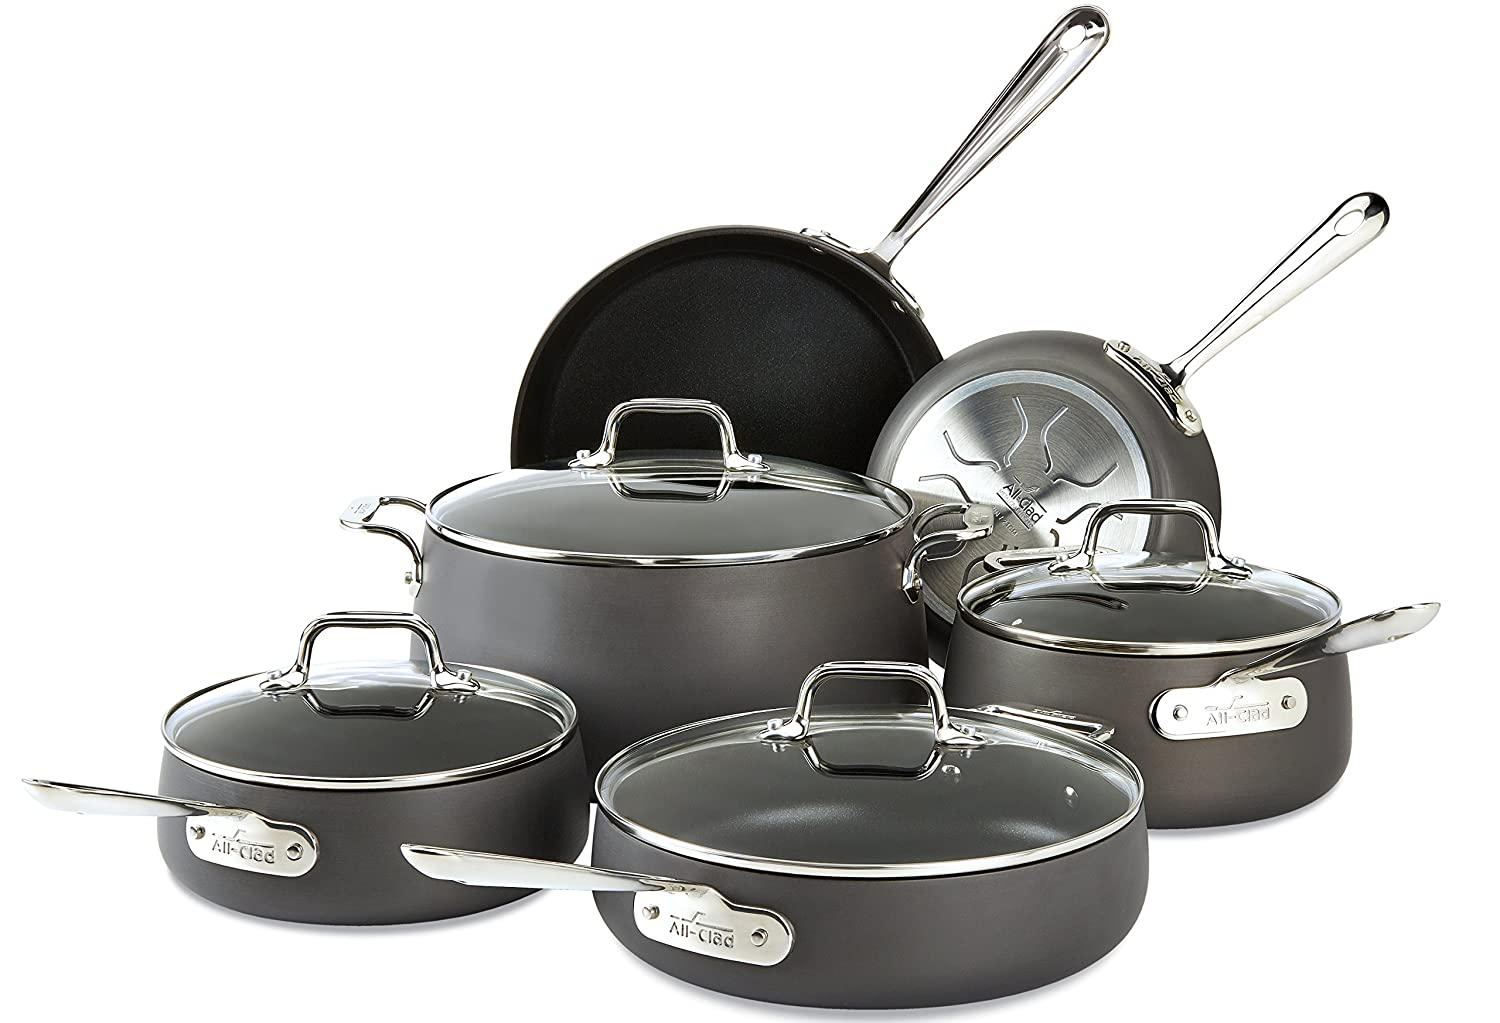 Amazon.com: All-Clad E785SC64 HA1 Hard Anodized Nonstick ...